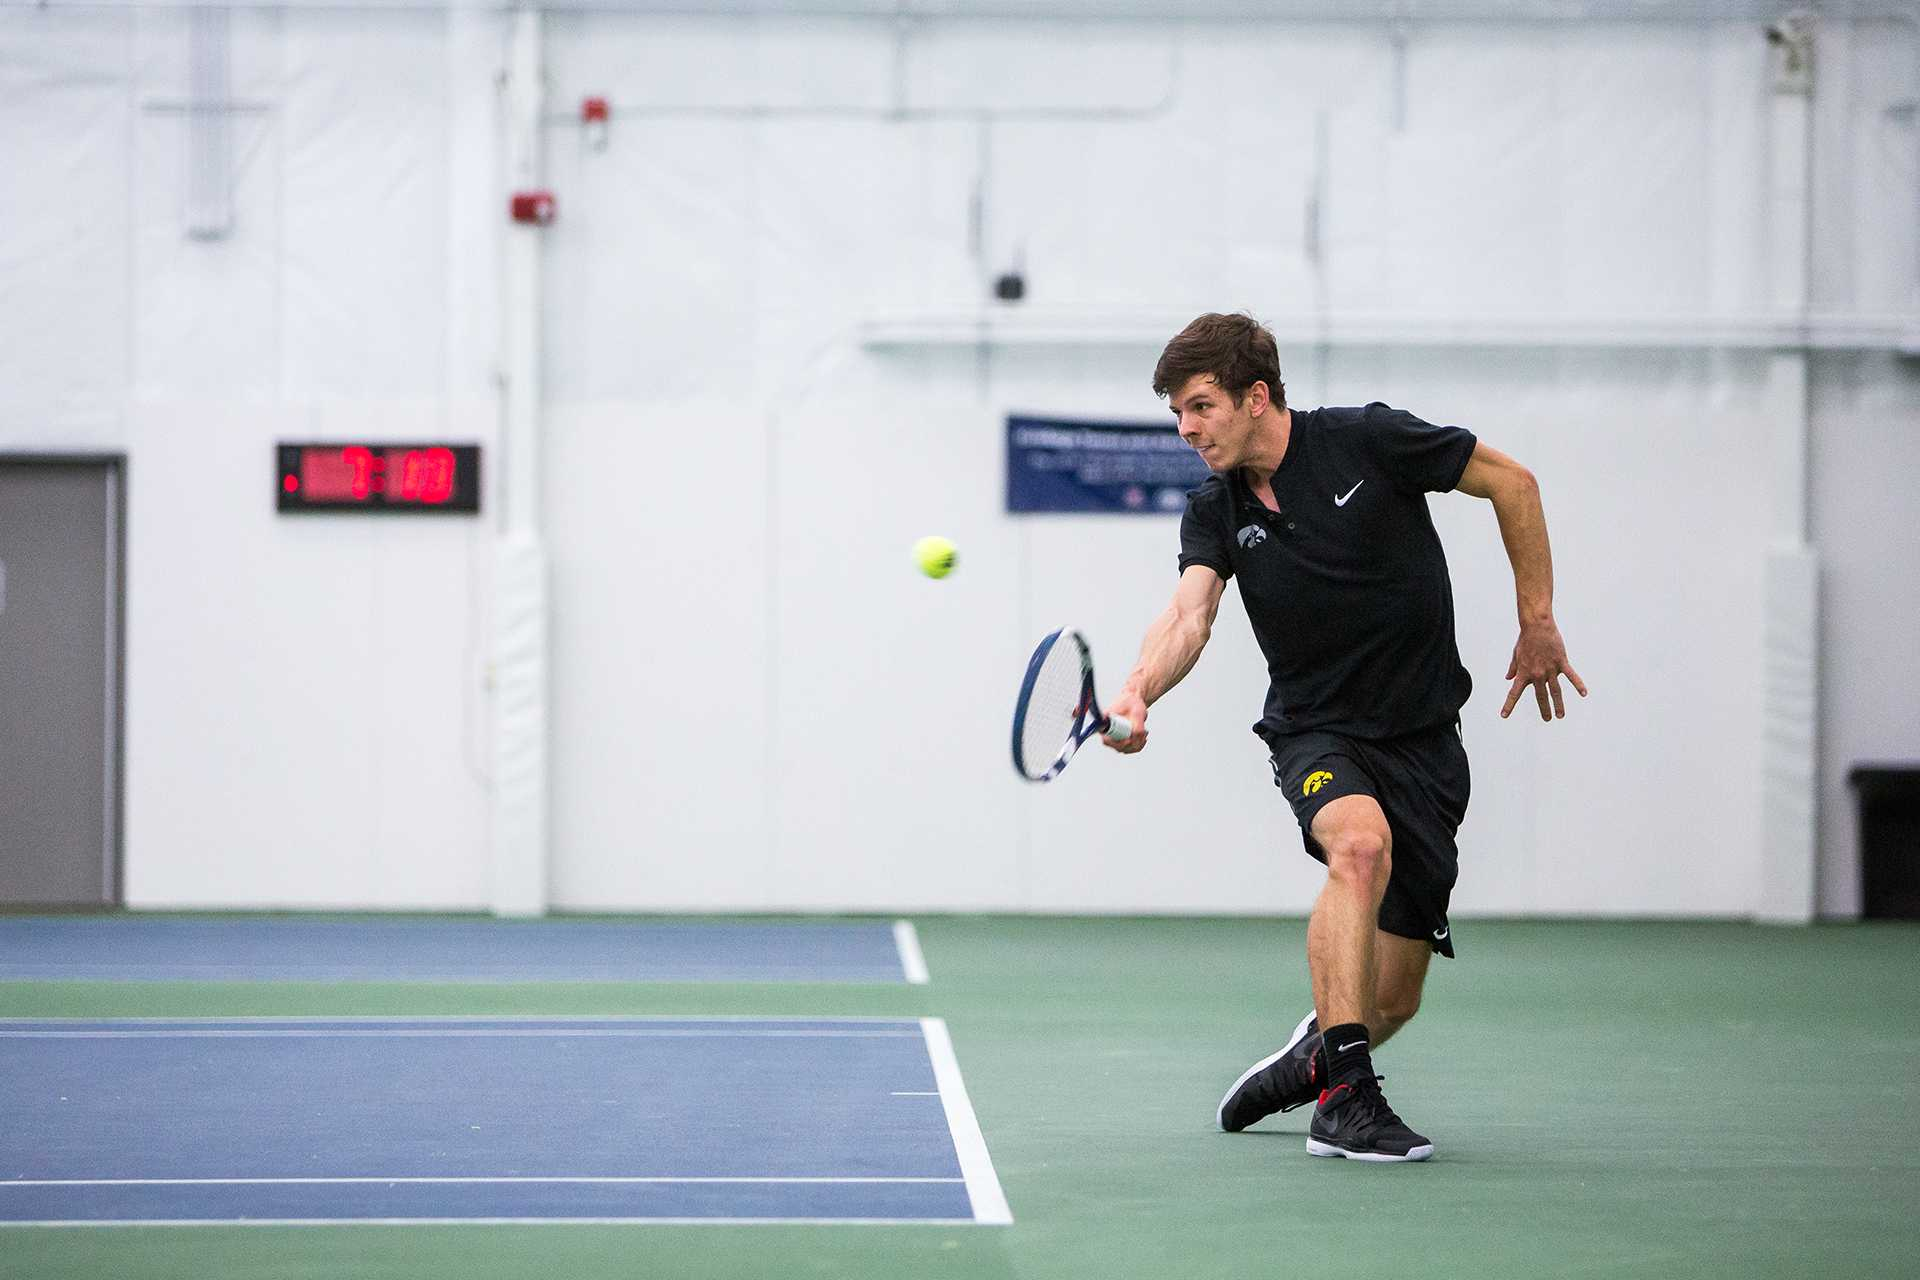 Iowa tennis player Piotr Smietana volleys the ball during a match against Cornell University on Friday, Mar. 2, 2018. Smietana lost his match 7-6 (7-4), 2-6, 6-4 and the Big Red defeated the Hawkeyes 4-3. (David Harmantas/The Daily Iowan)